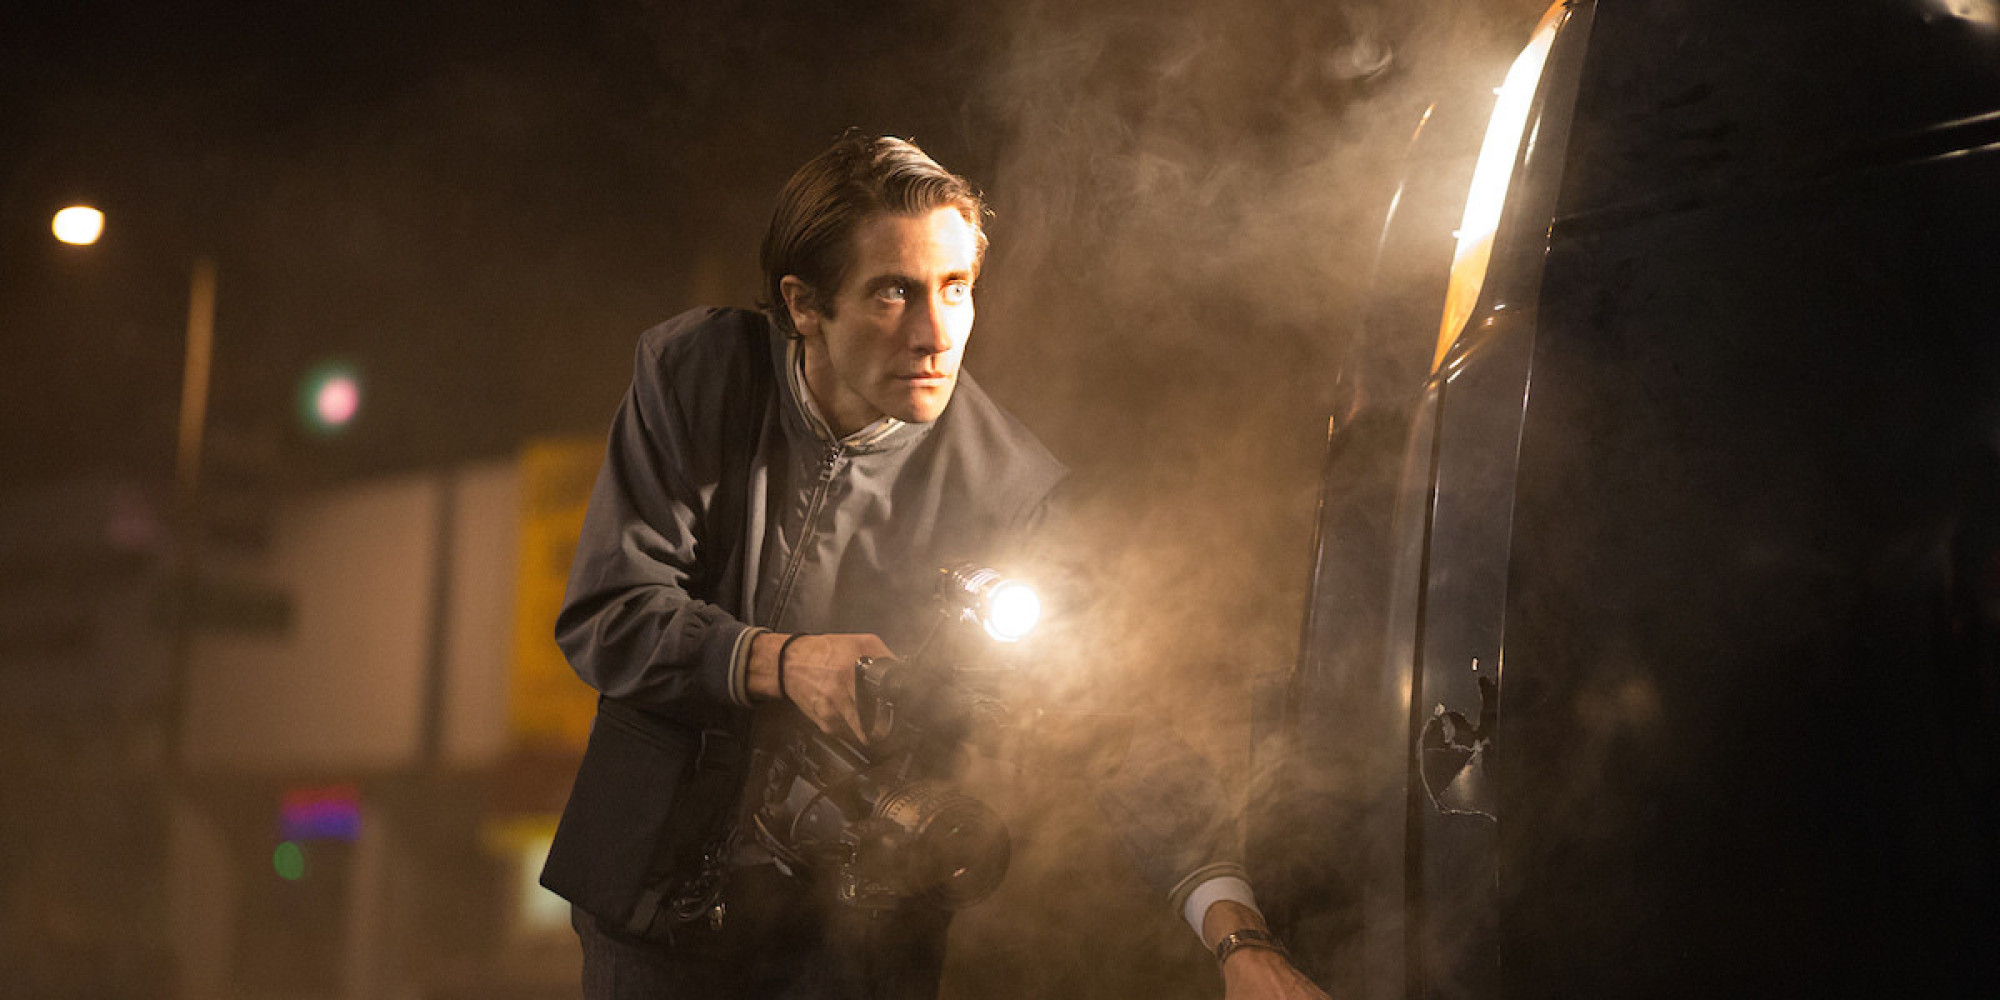 Jake Gyllenhaal stars as Lou Bloom in 'Nightcrawler'